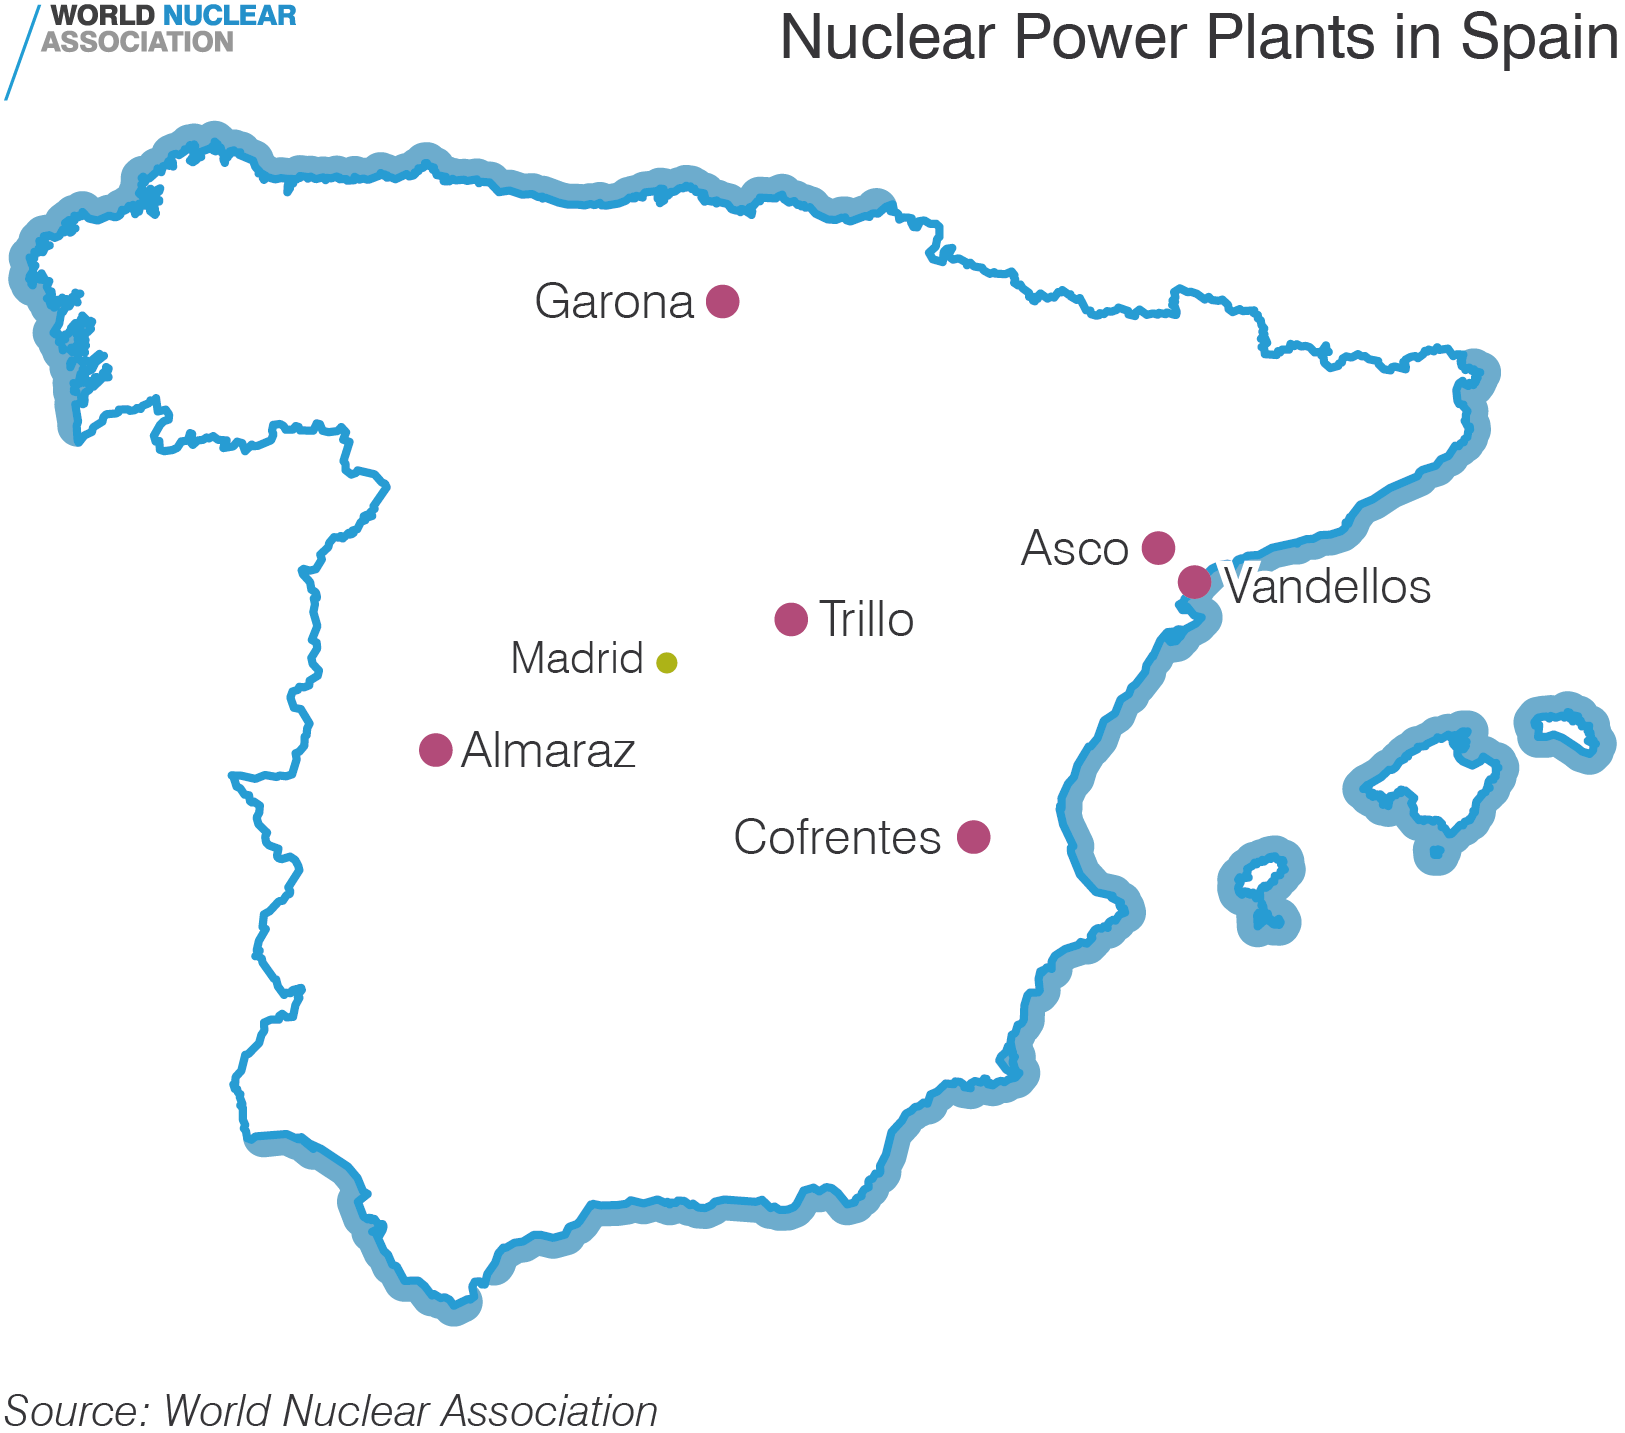 Nuclear Power Plants in Spain